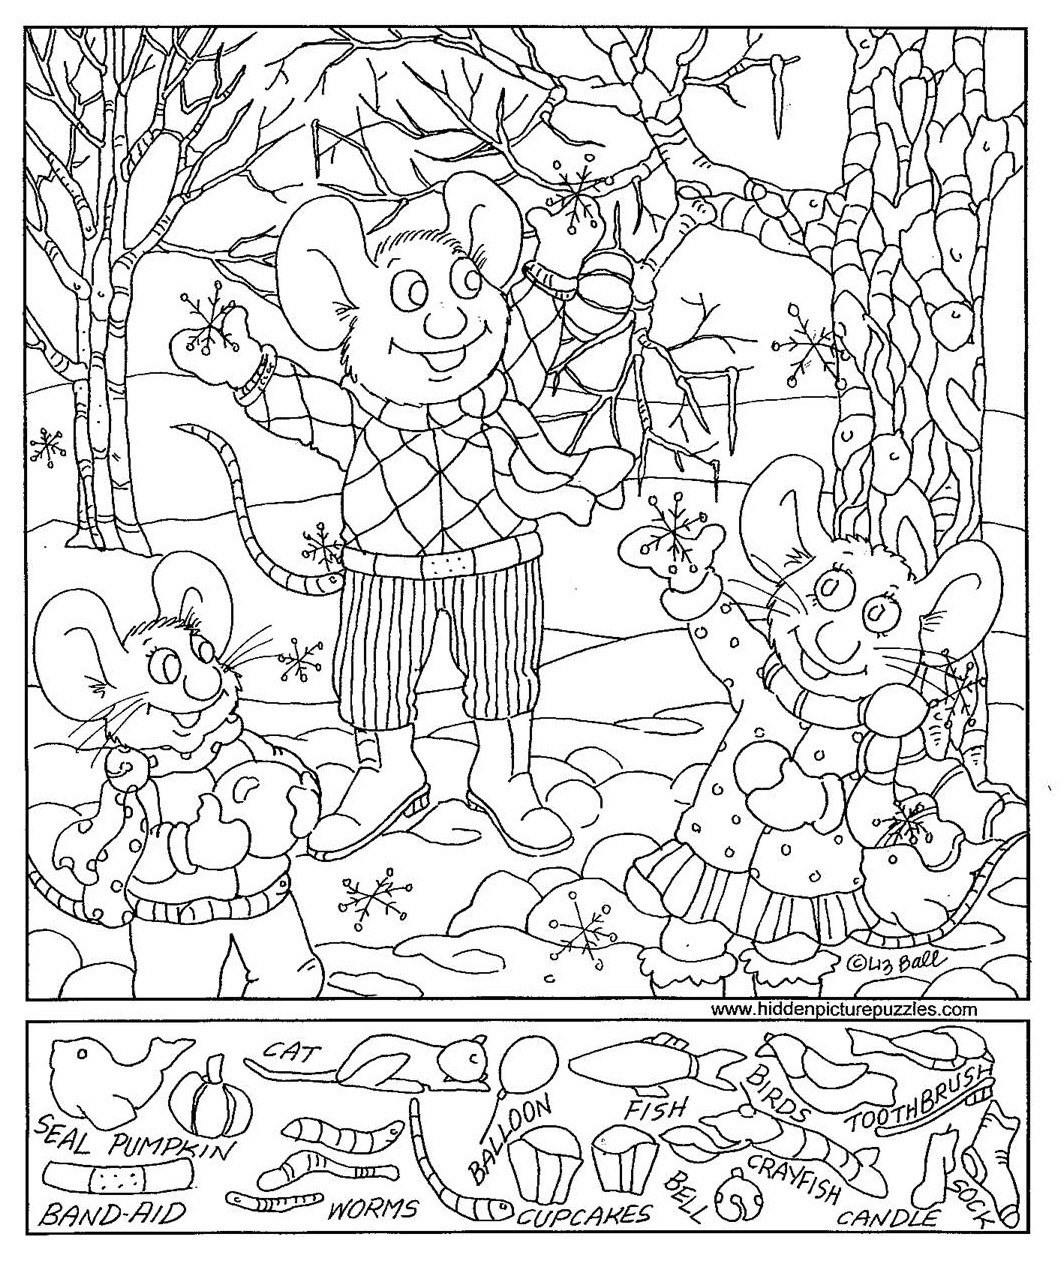 Hidden Pictures Worksheets